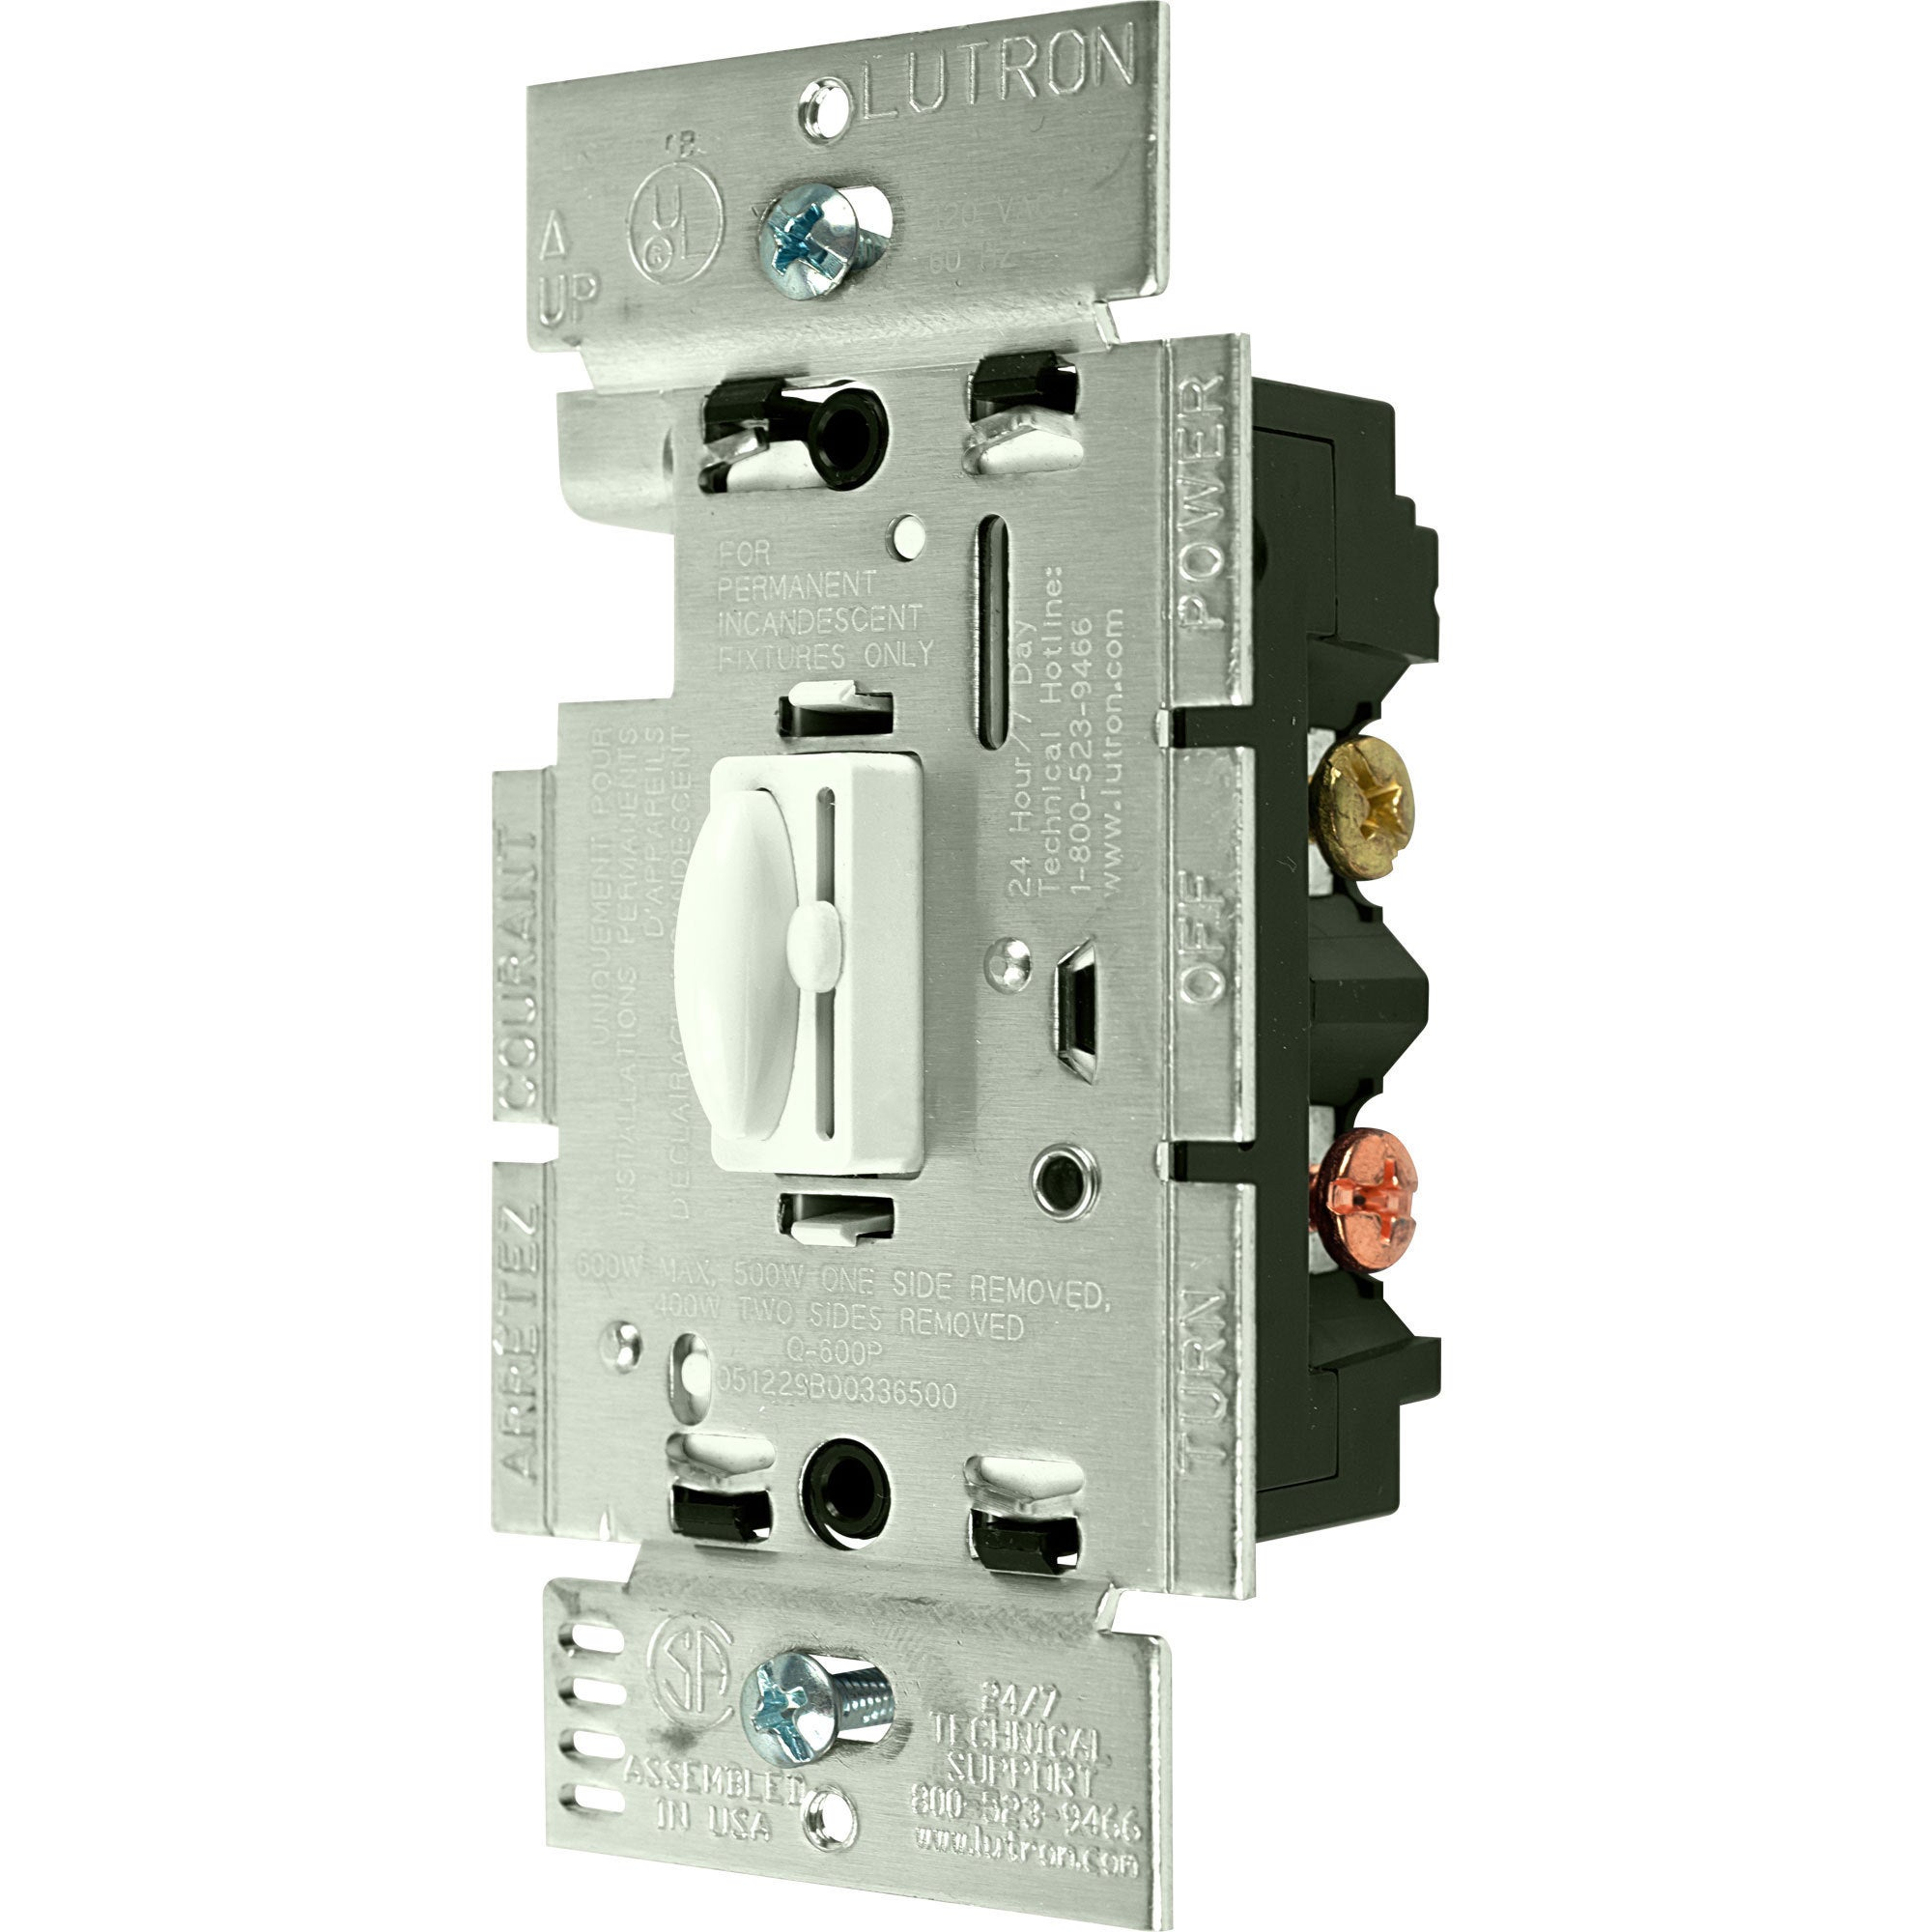 Shop Quoto 3 Way Dimmer Switch 600w By Lutron On Sale Free Electronic Shipping Orders Over 45 10426471